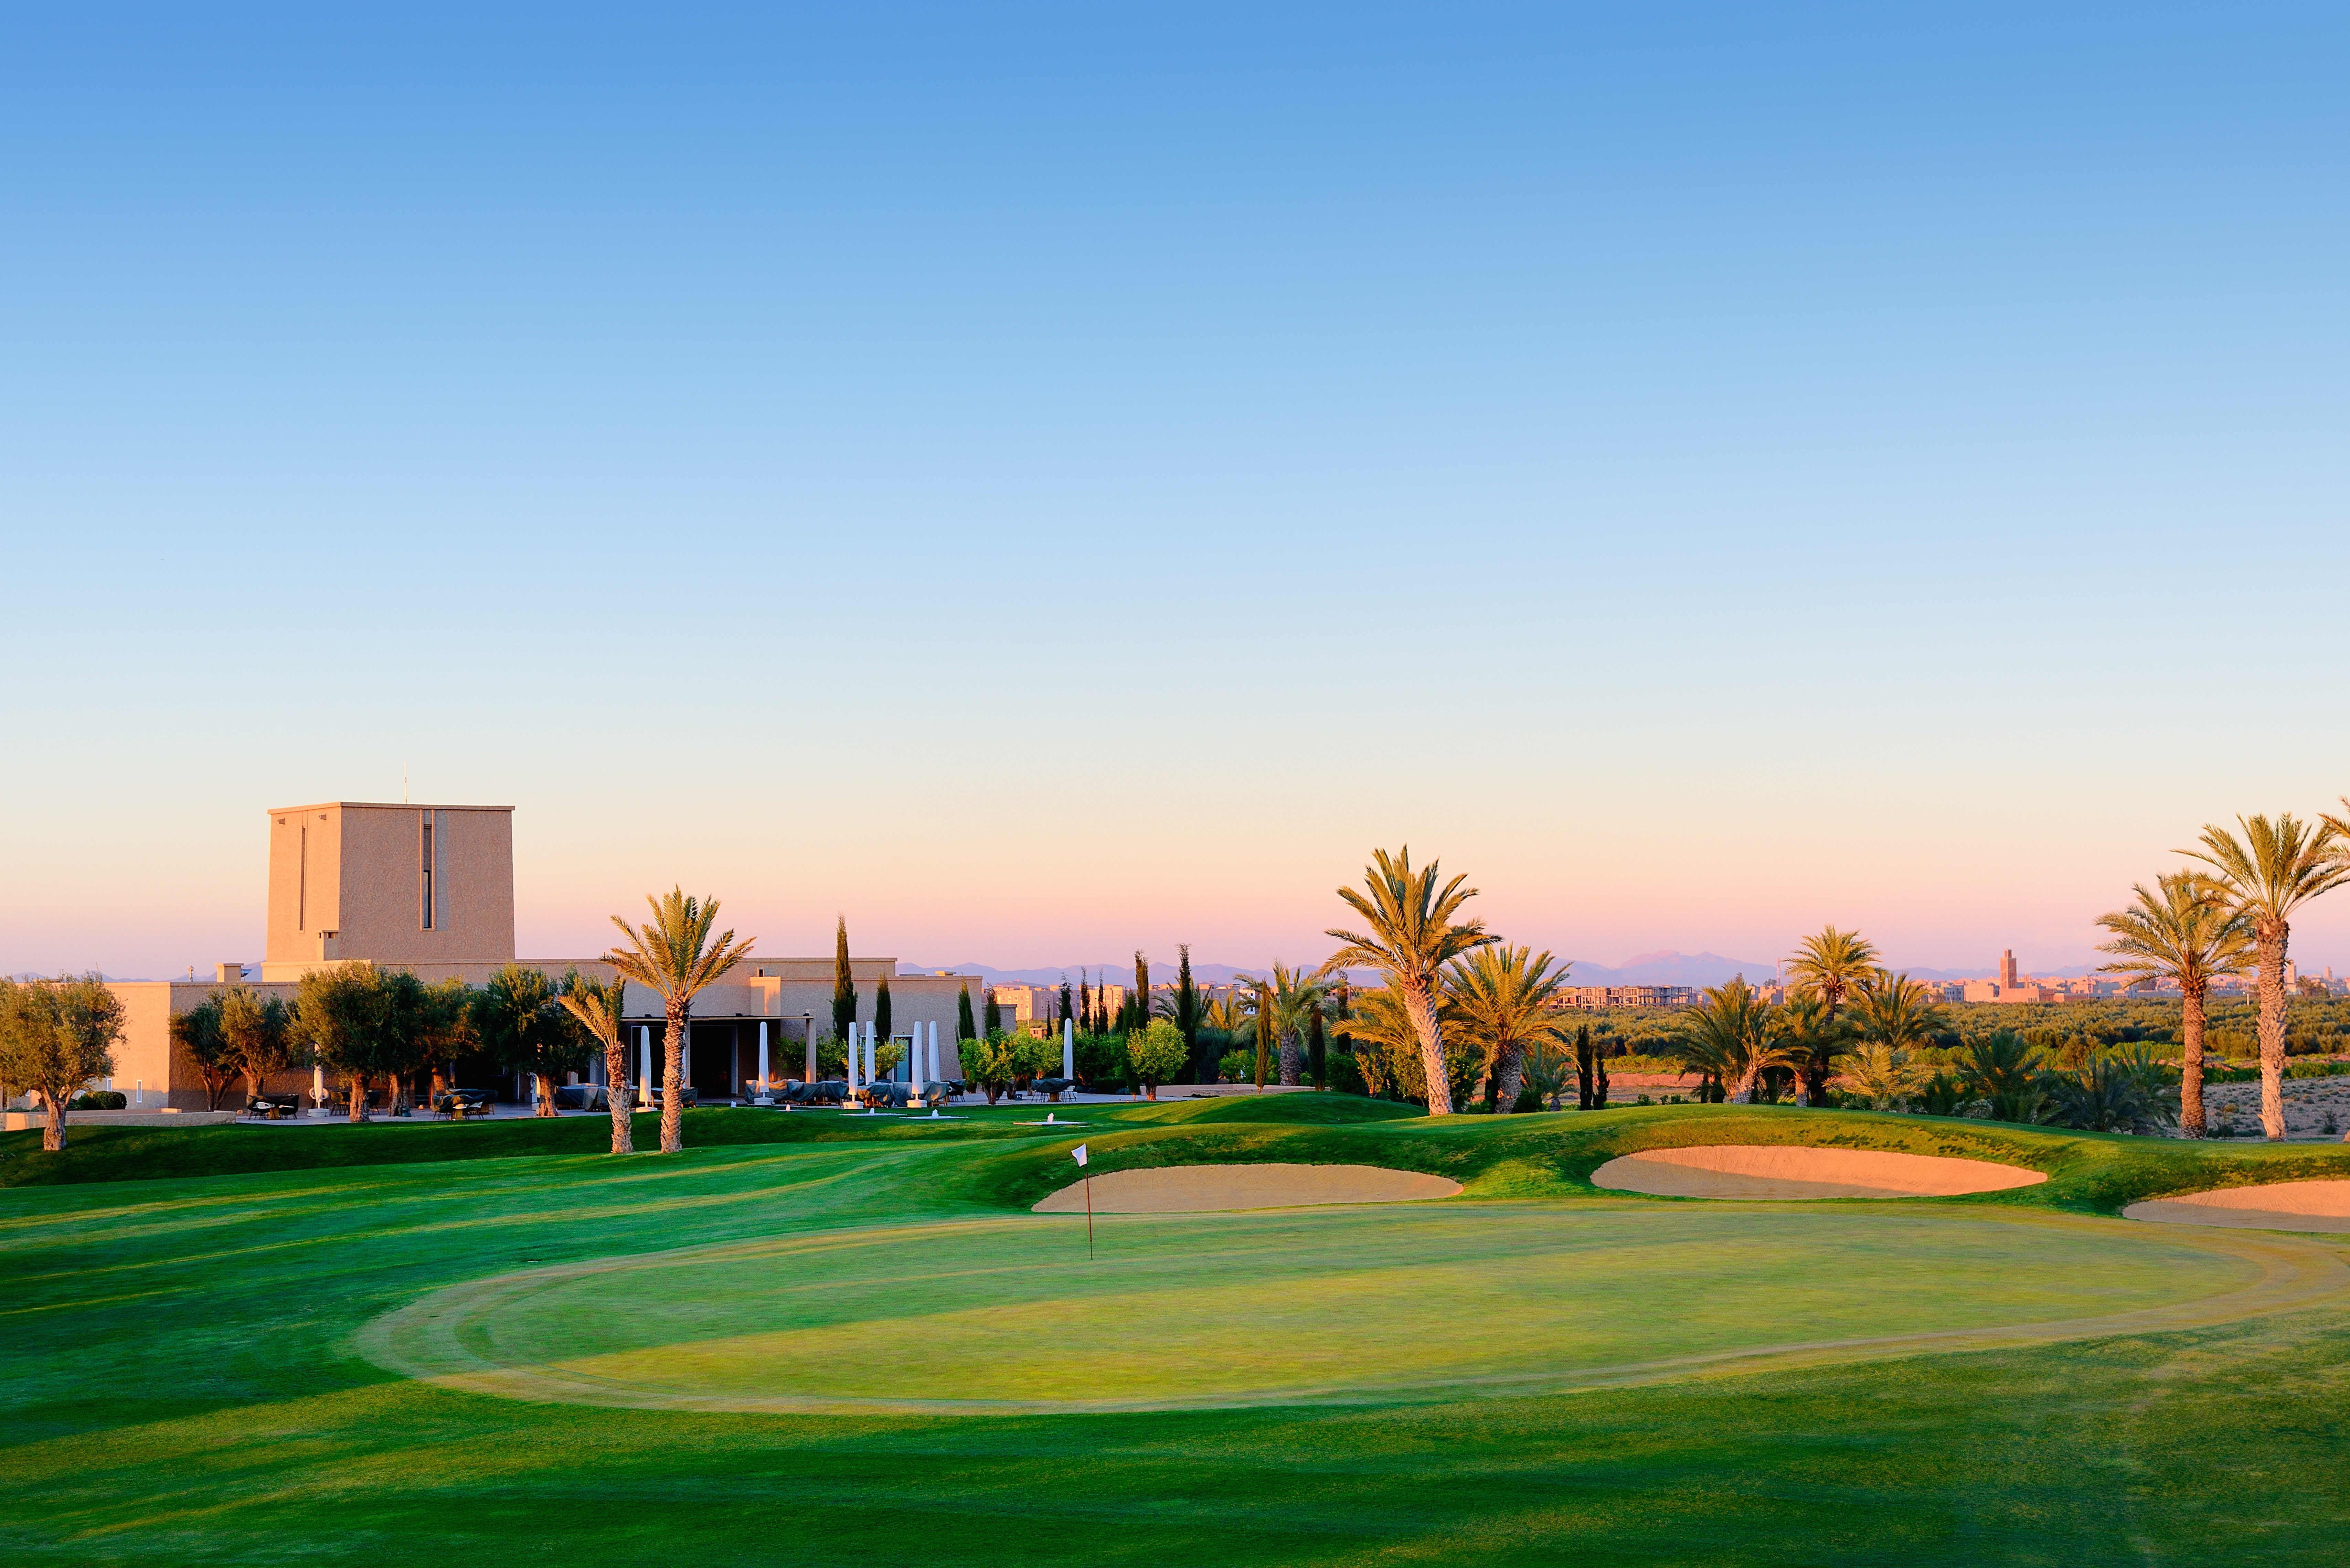 The elegant yet understated clubhouse at Assoufid occupies a prominent knoll